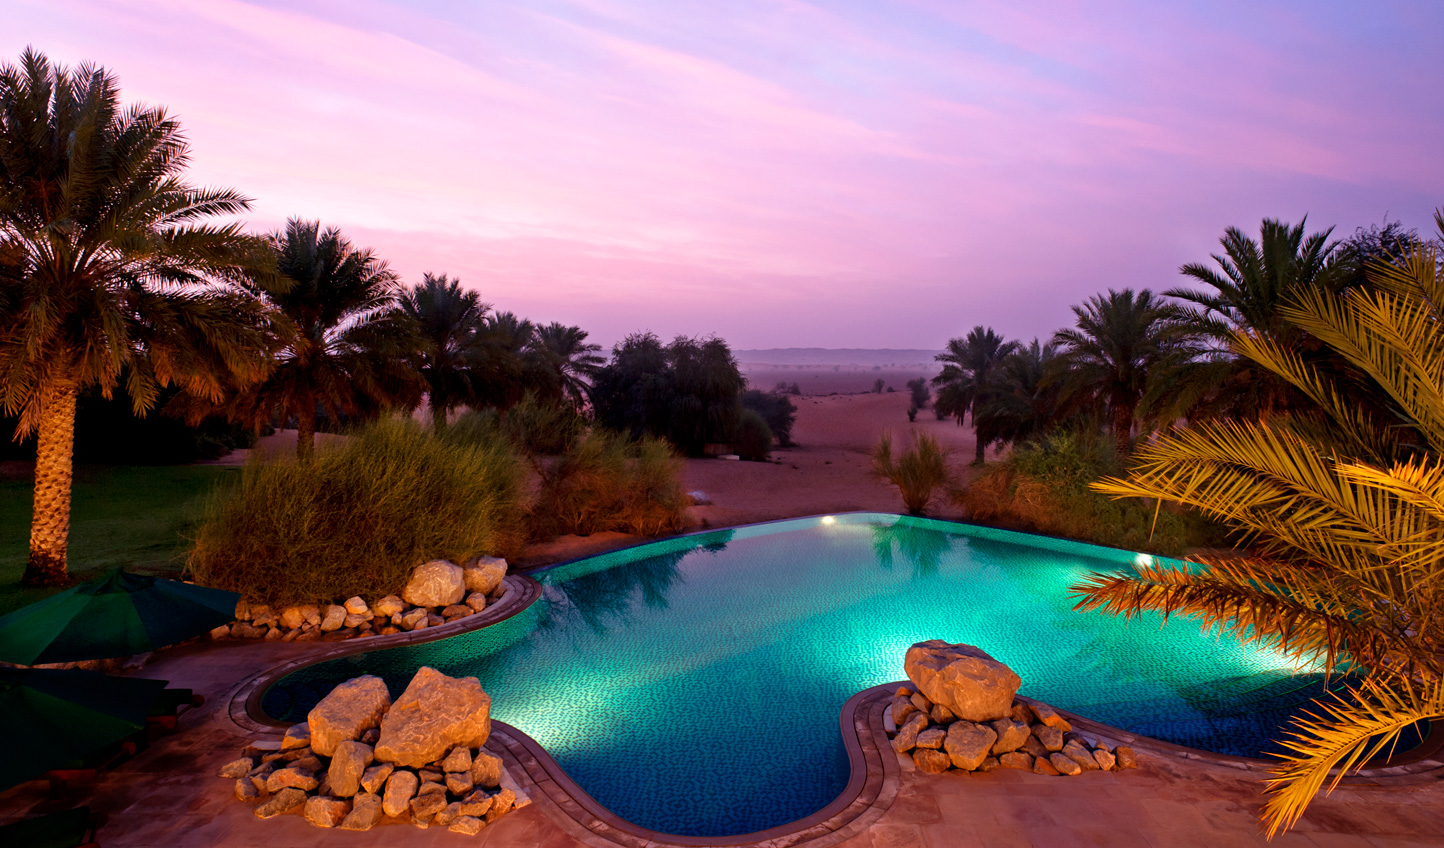 Your very own desert oasis